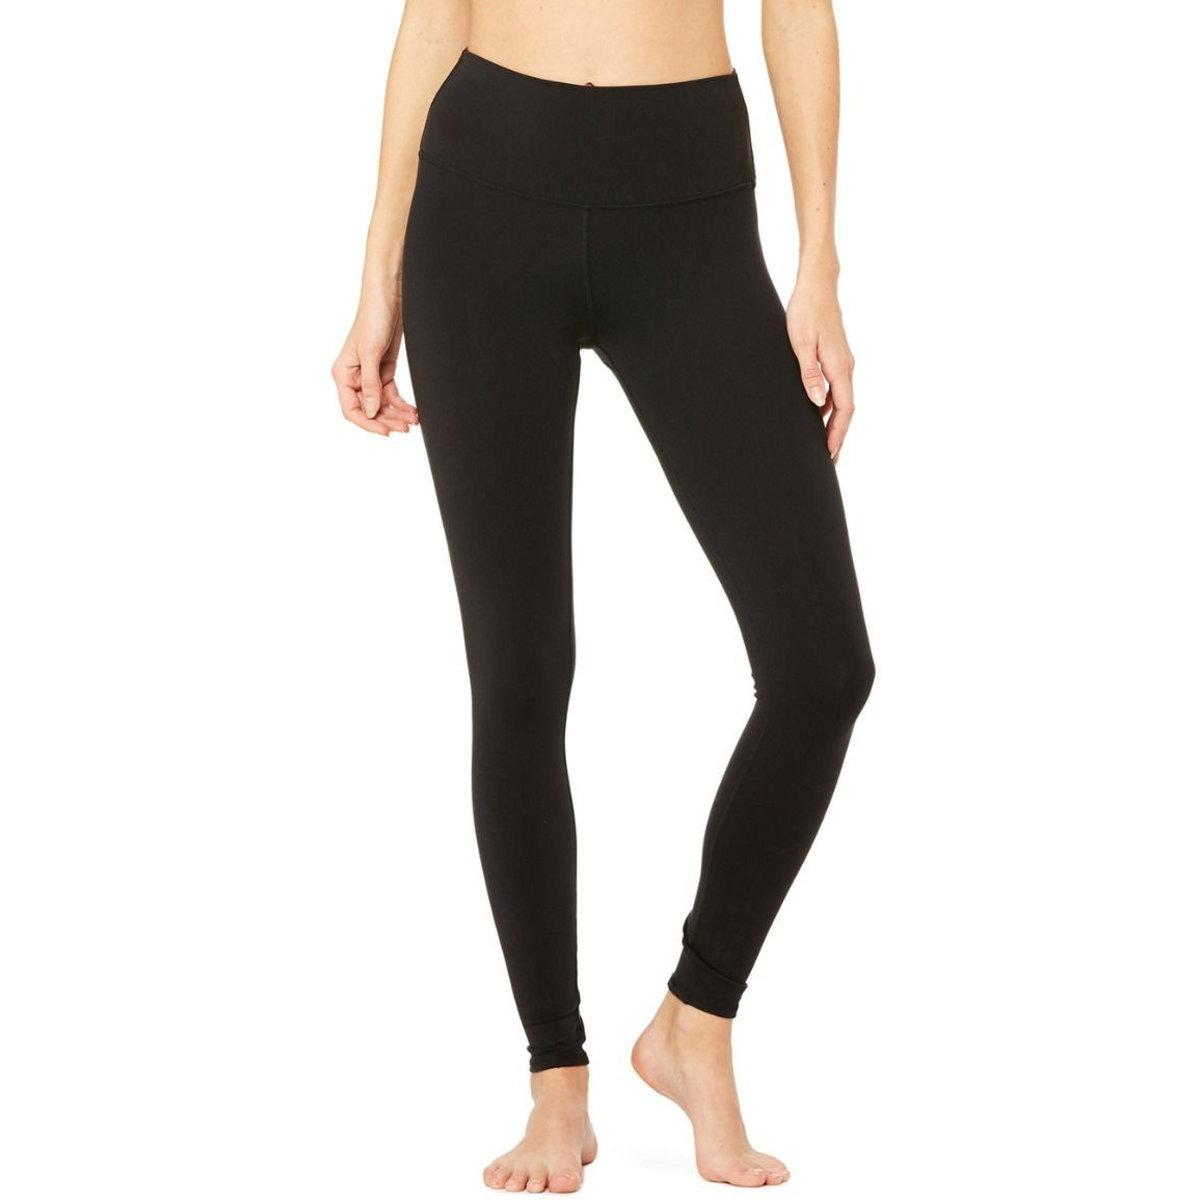 72bdc9f6426fae Alo Yoga. Women's Black High Waist Dash LEGGING. $104 From Paragon Sports